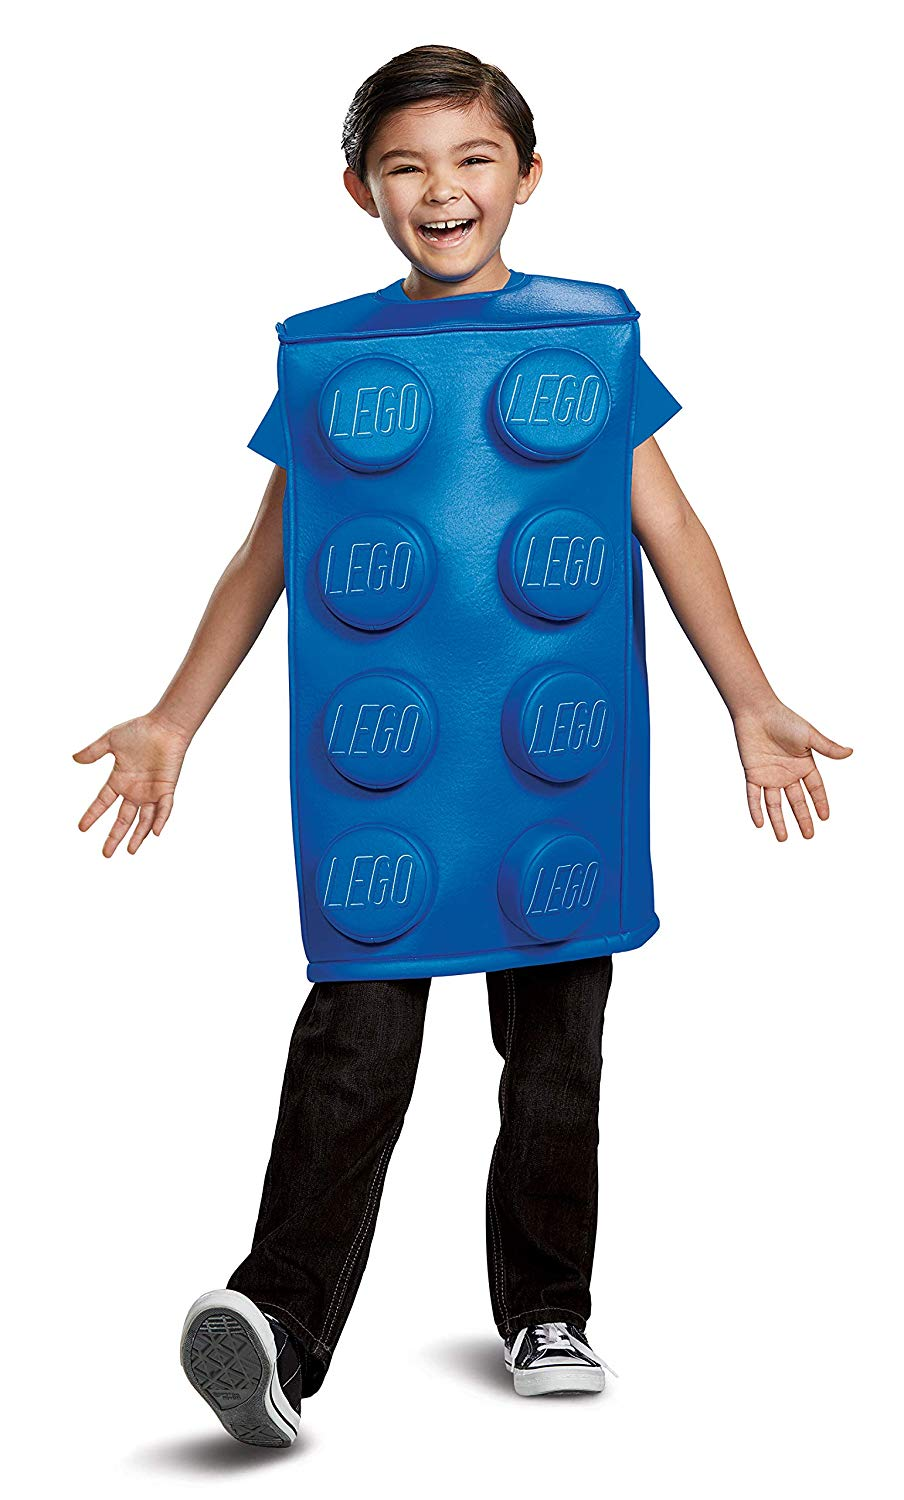 91% off LEGO Blue Brick Costume